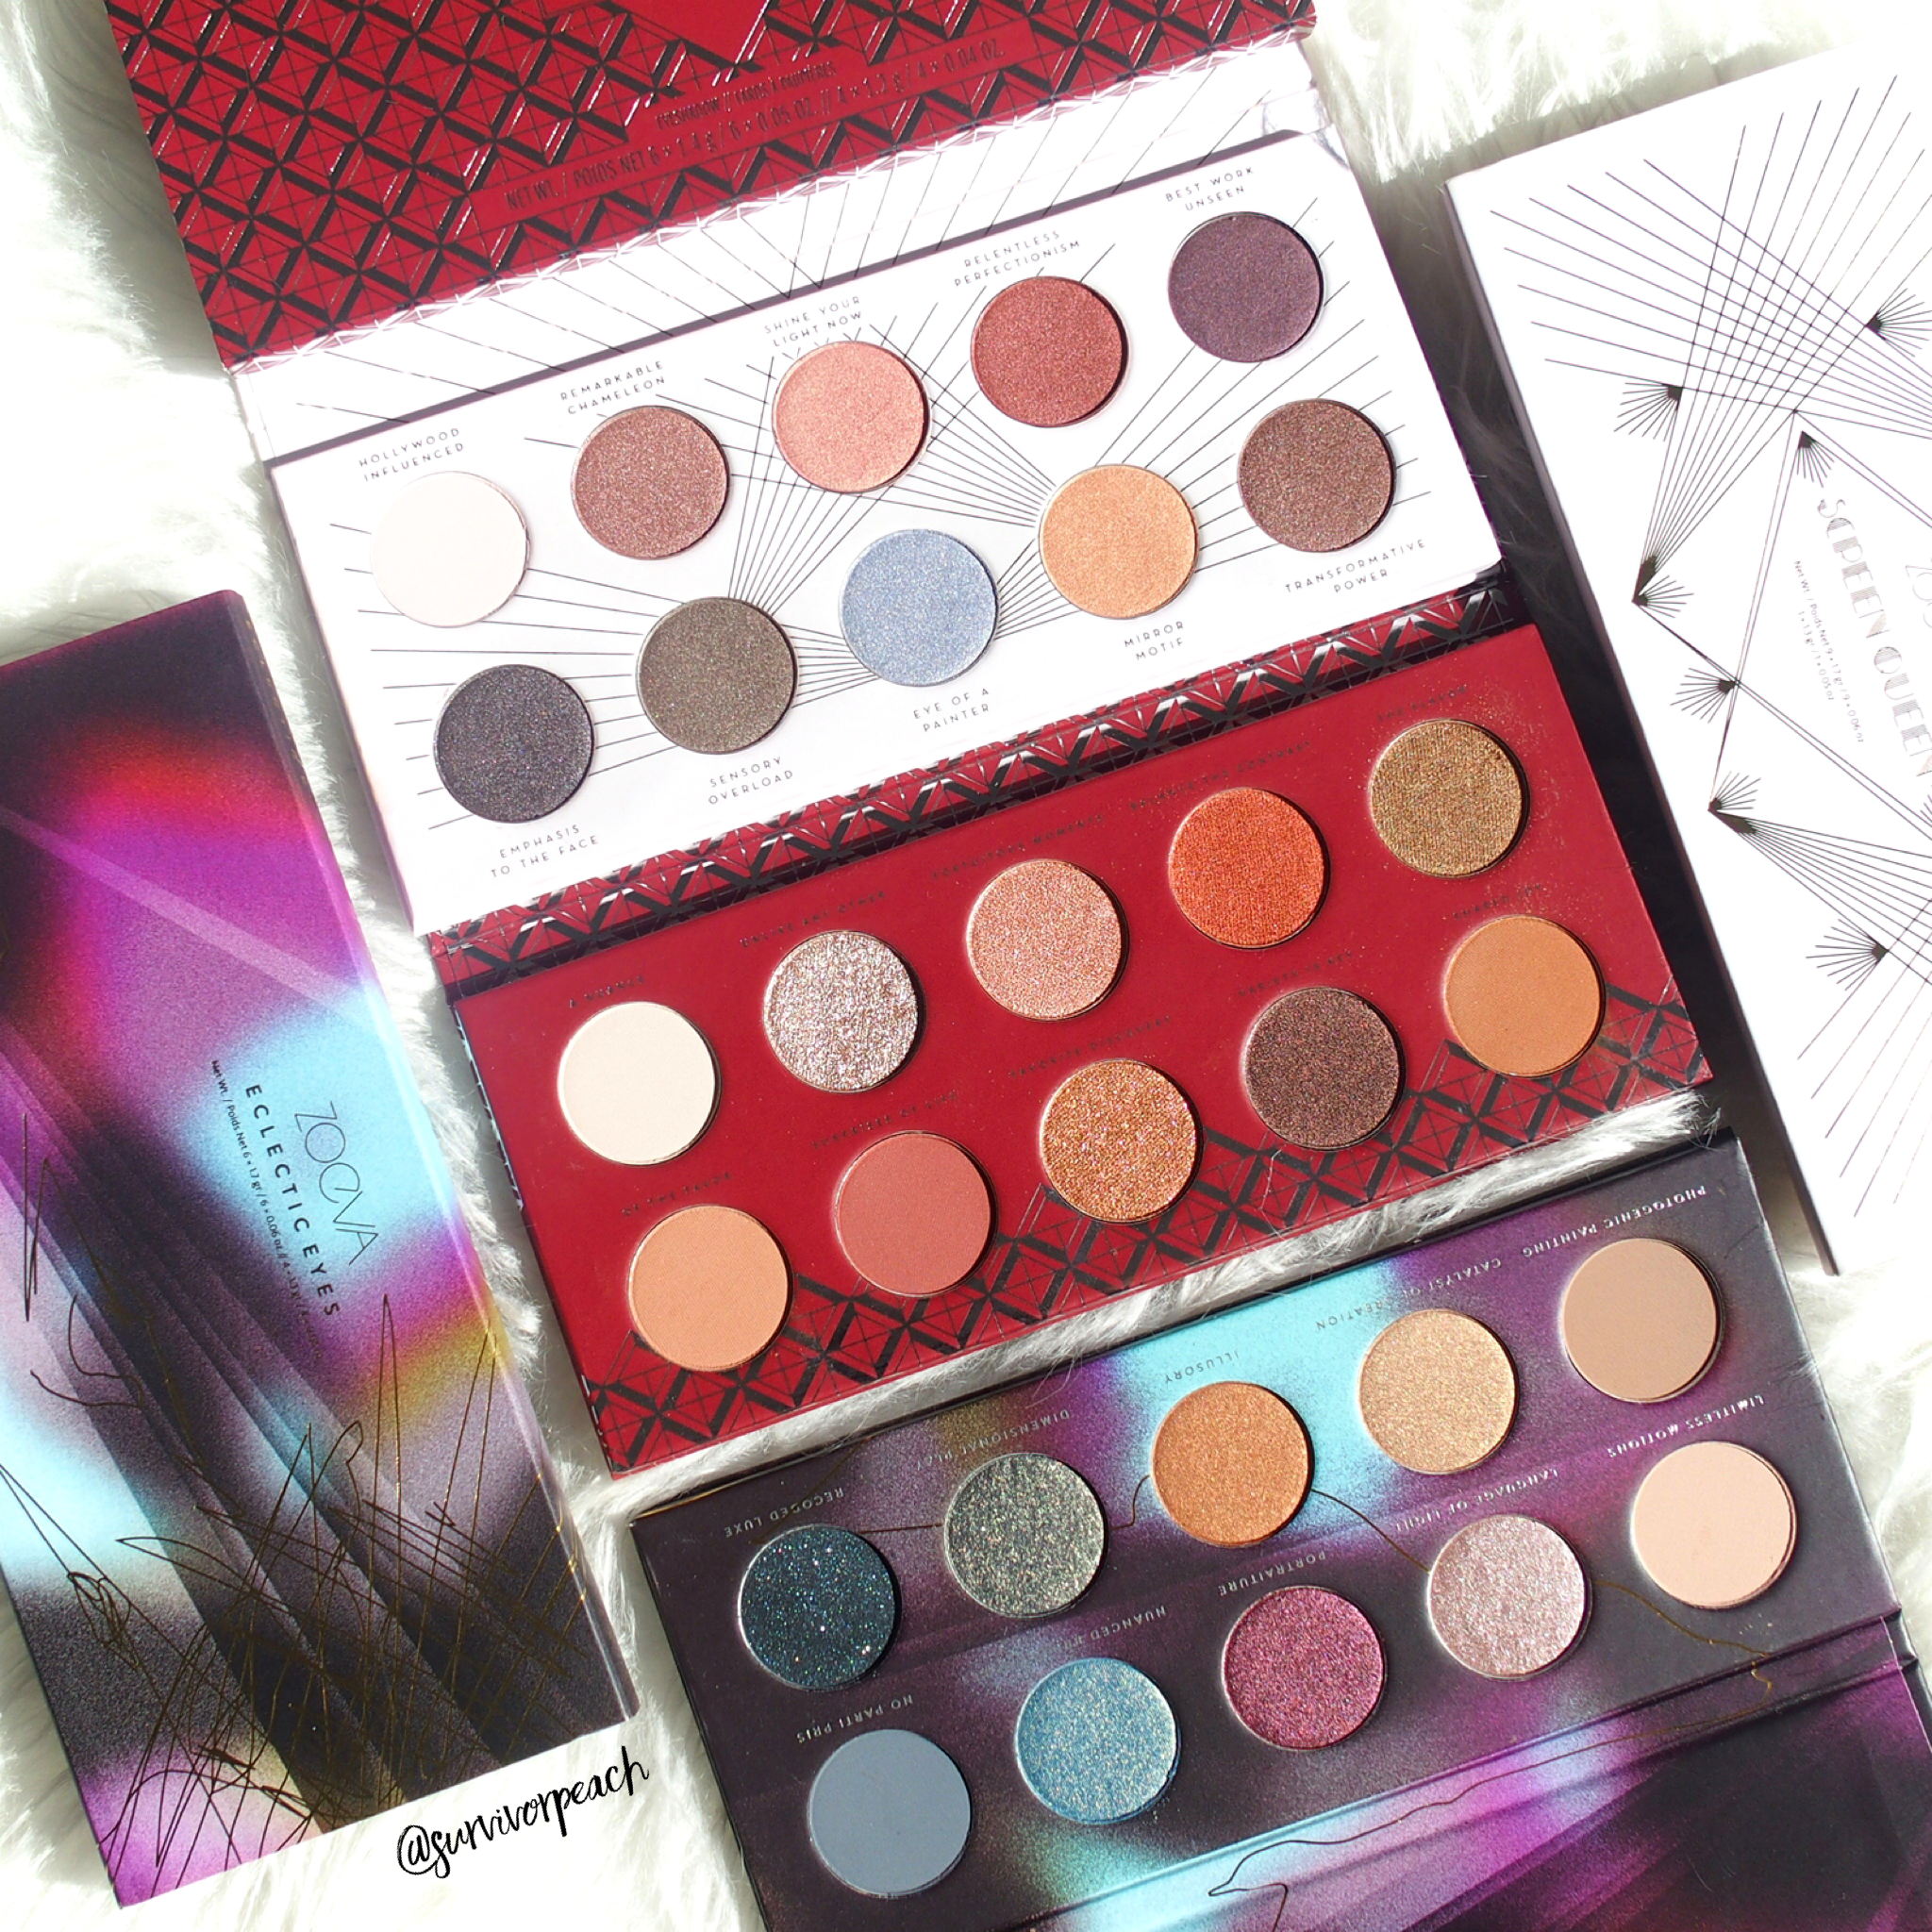 Zoeva Eyeshadow palettes : Screen Queen, Eclectric Eyes, Spice of Life